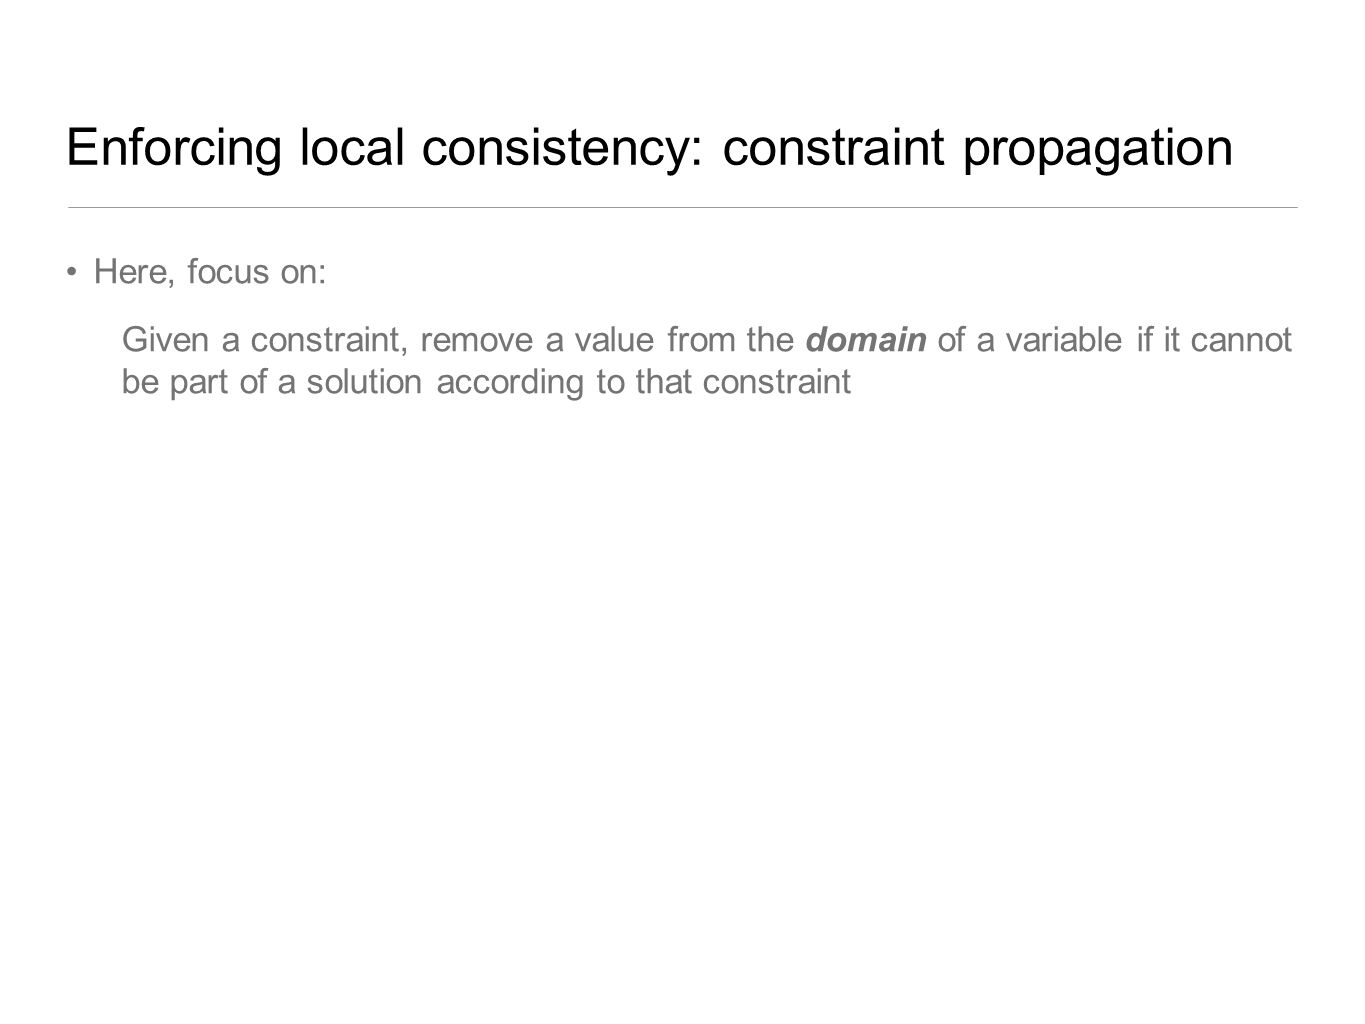 Enforcing local consistency: constraint propagation